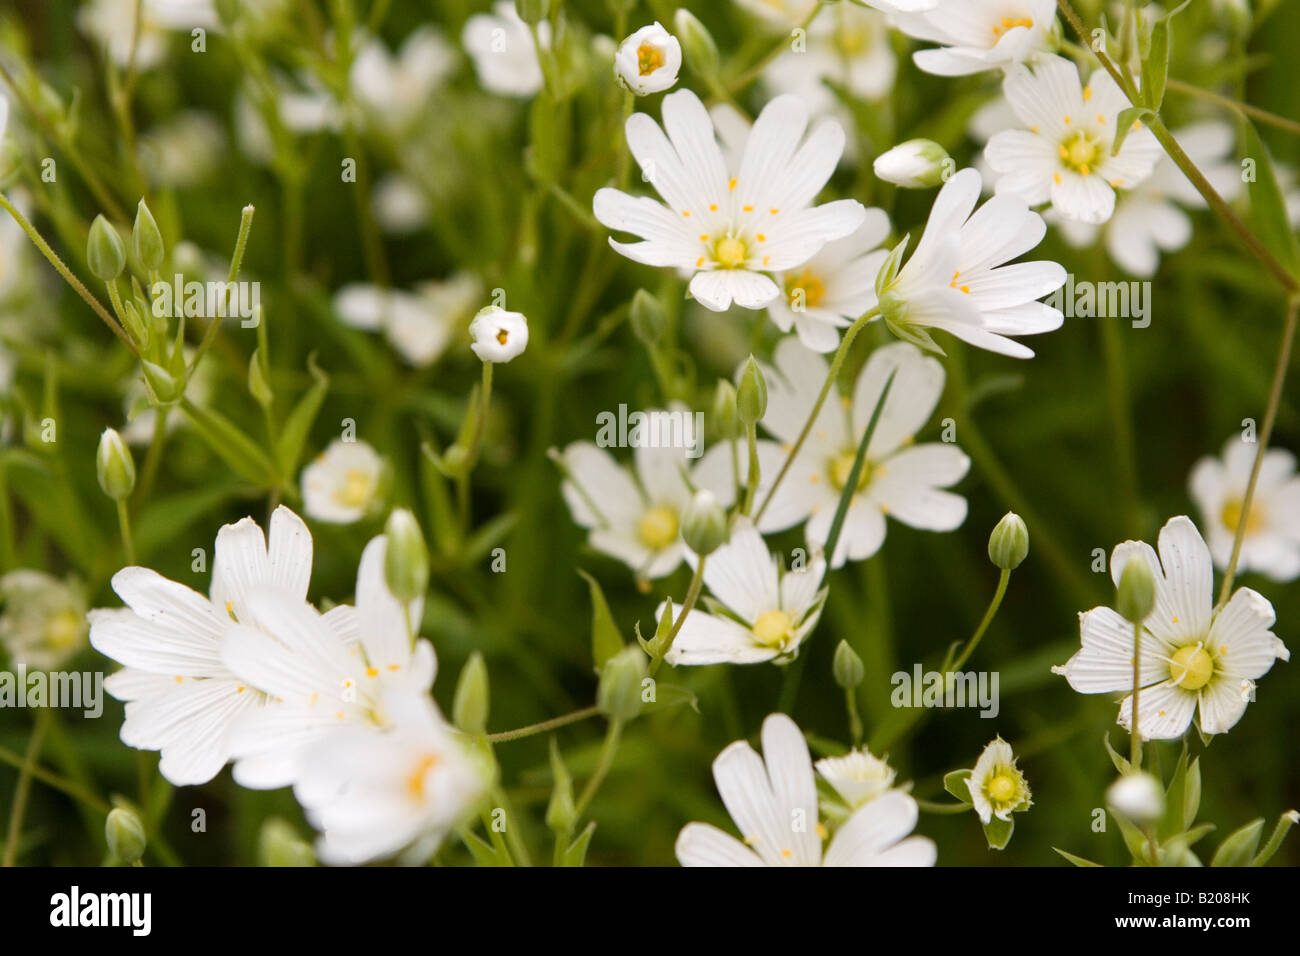 White daisy like flowers thriving in north east england stock photo white daisy like flowers thriving in north east england izmirmasajfo